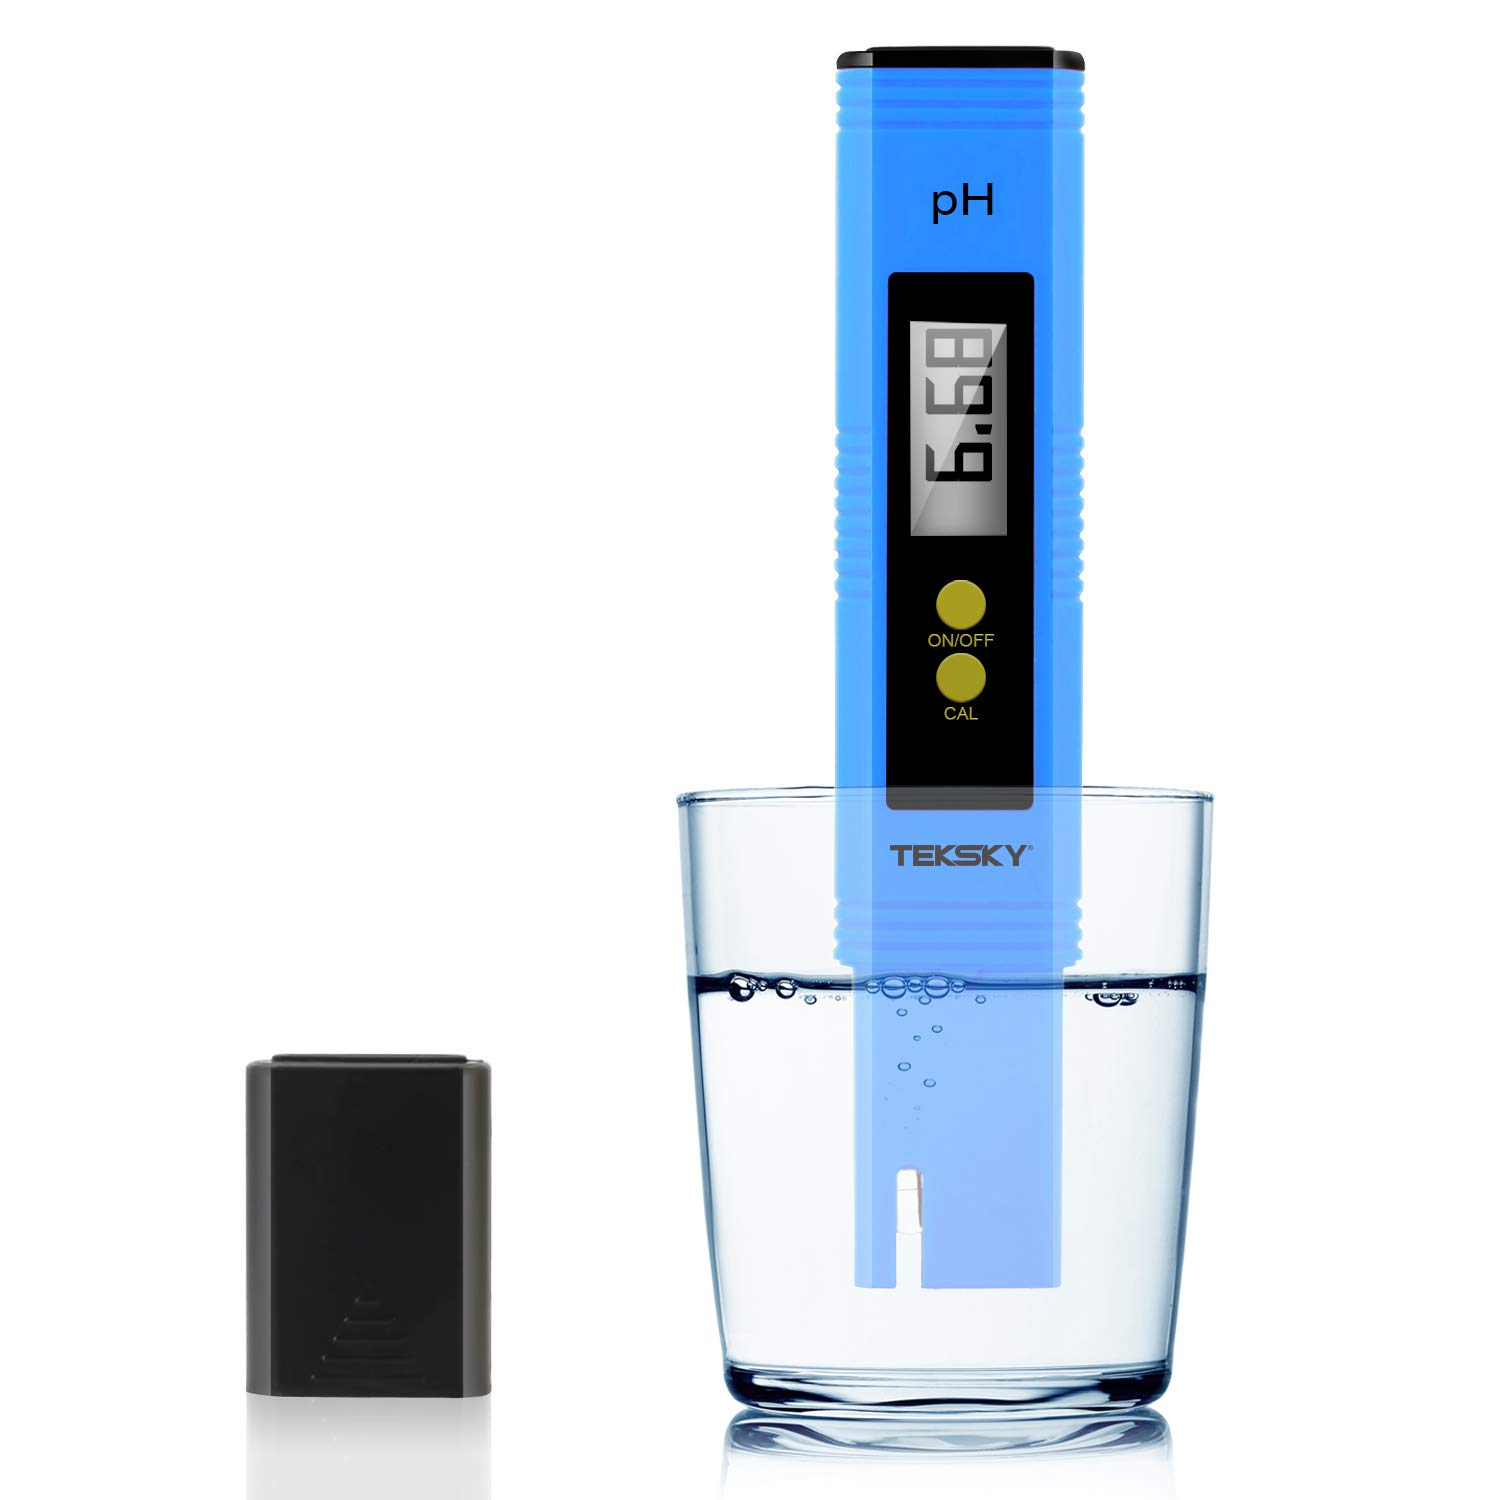 TekSky Digital pH Meters - 0.01pH Accuracy, 0-60 Celsius, 0-14 PH Measurement Range - Food Brewing Drinking Hydroponics Aquariums Pools Spa - Calibration Powders, Sensitive Probe Design with ATC